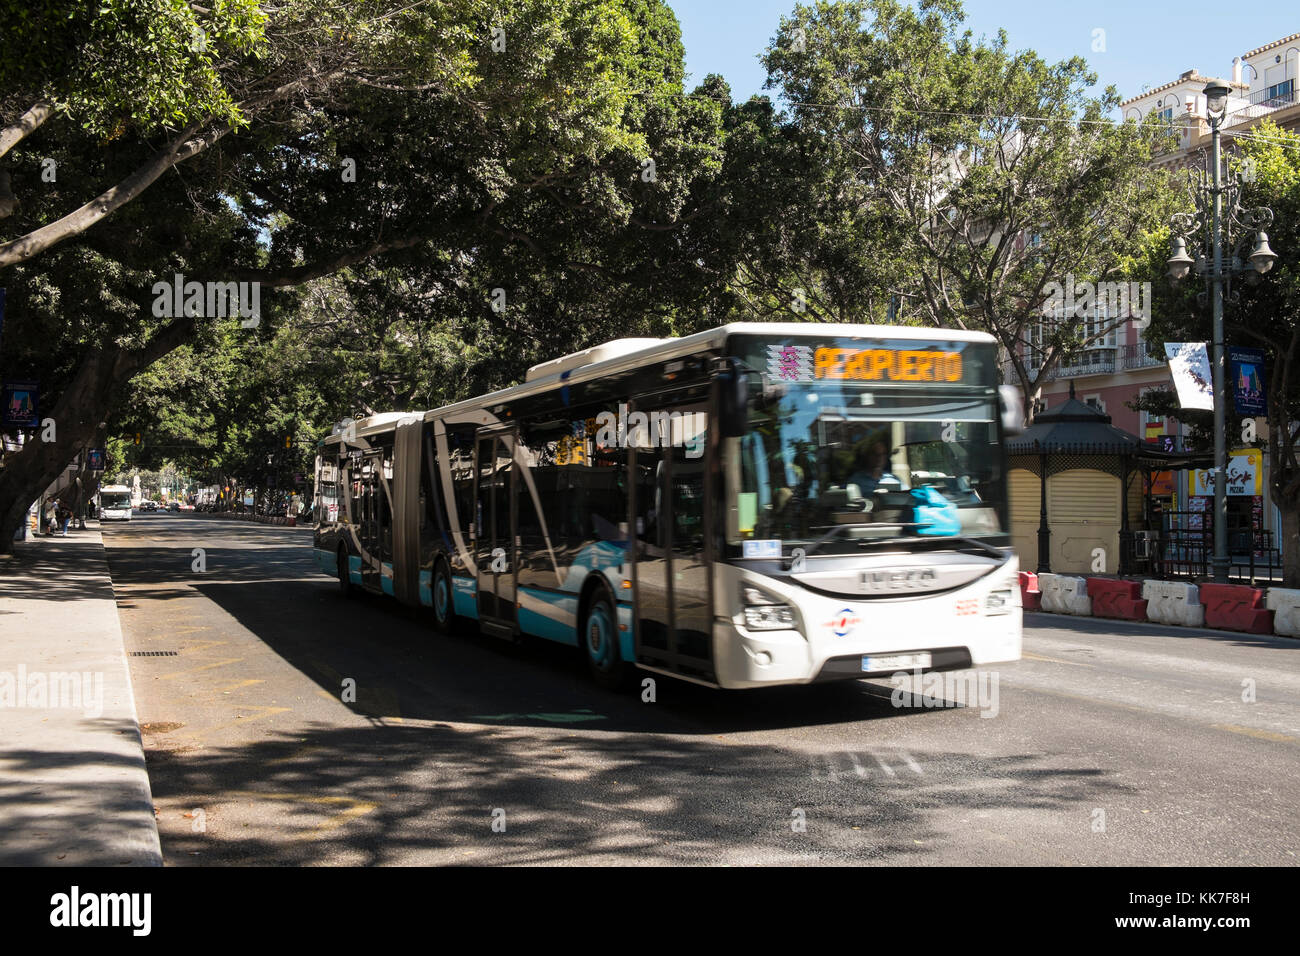 Articulated bus in Málaga, Spain. - Stock Image